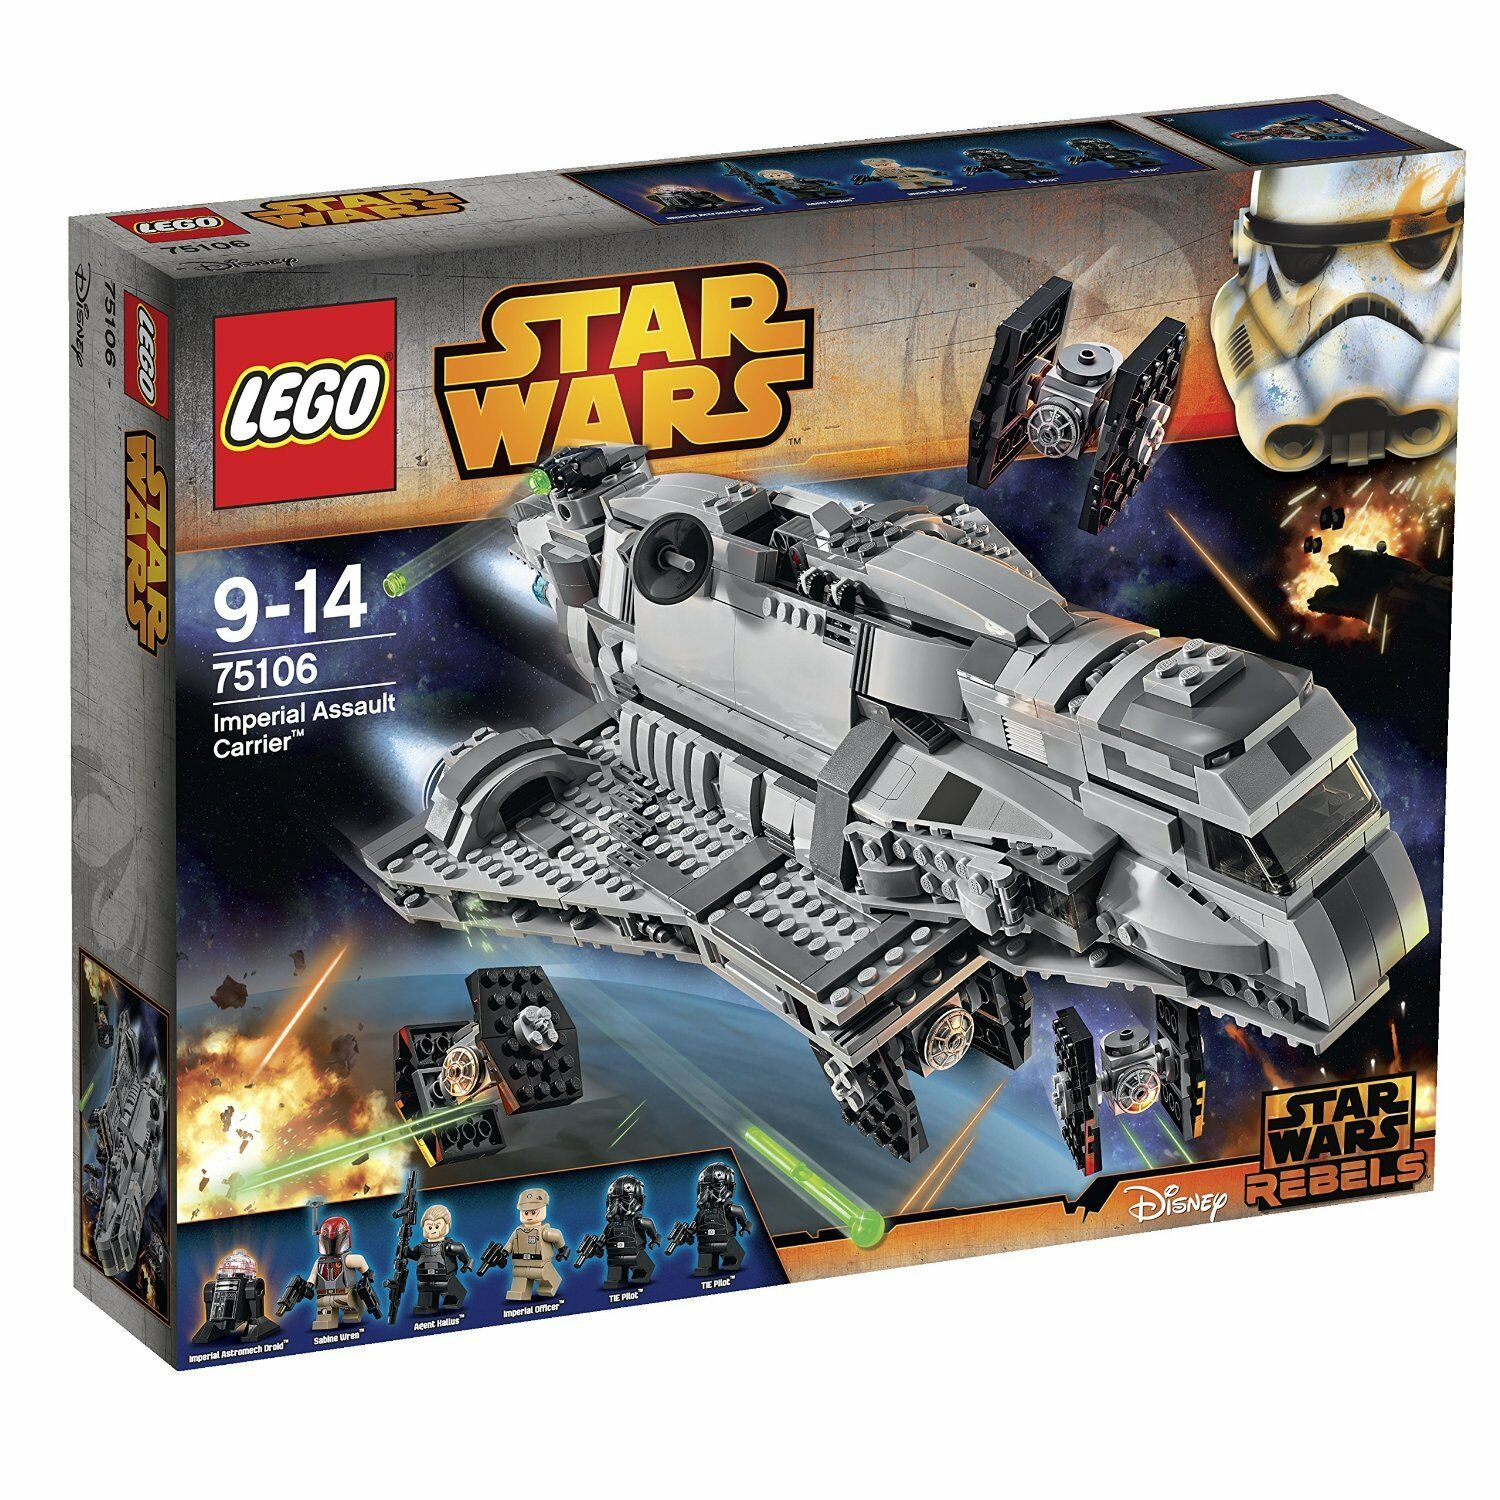 Lego Star Wars 75106 Imperial Assault Carrier - Nuovo - Sealed